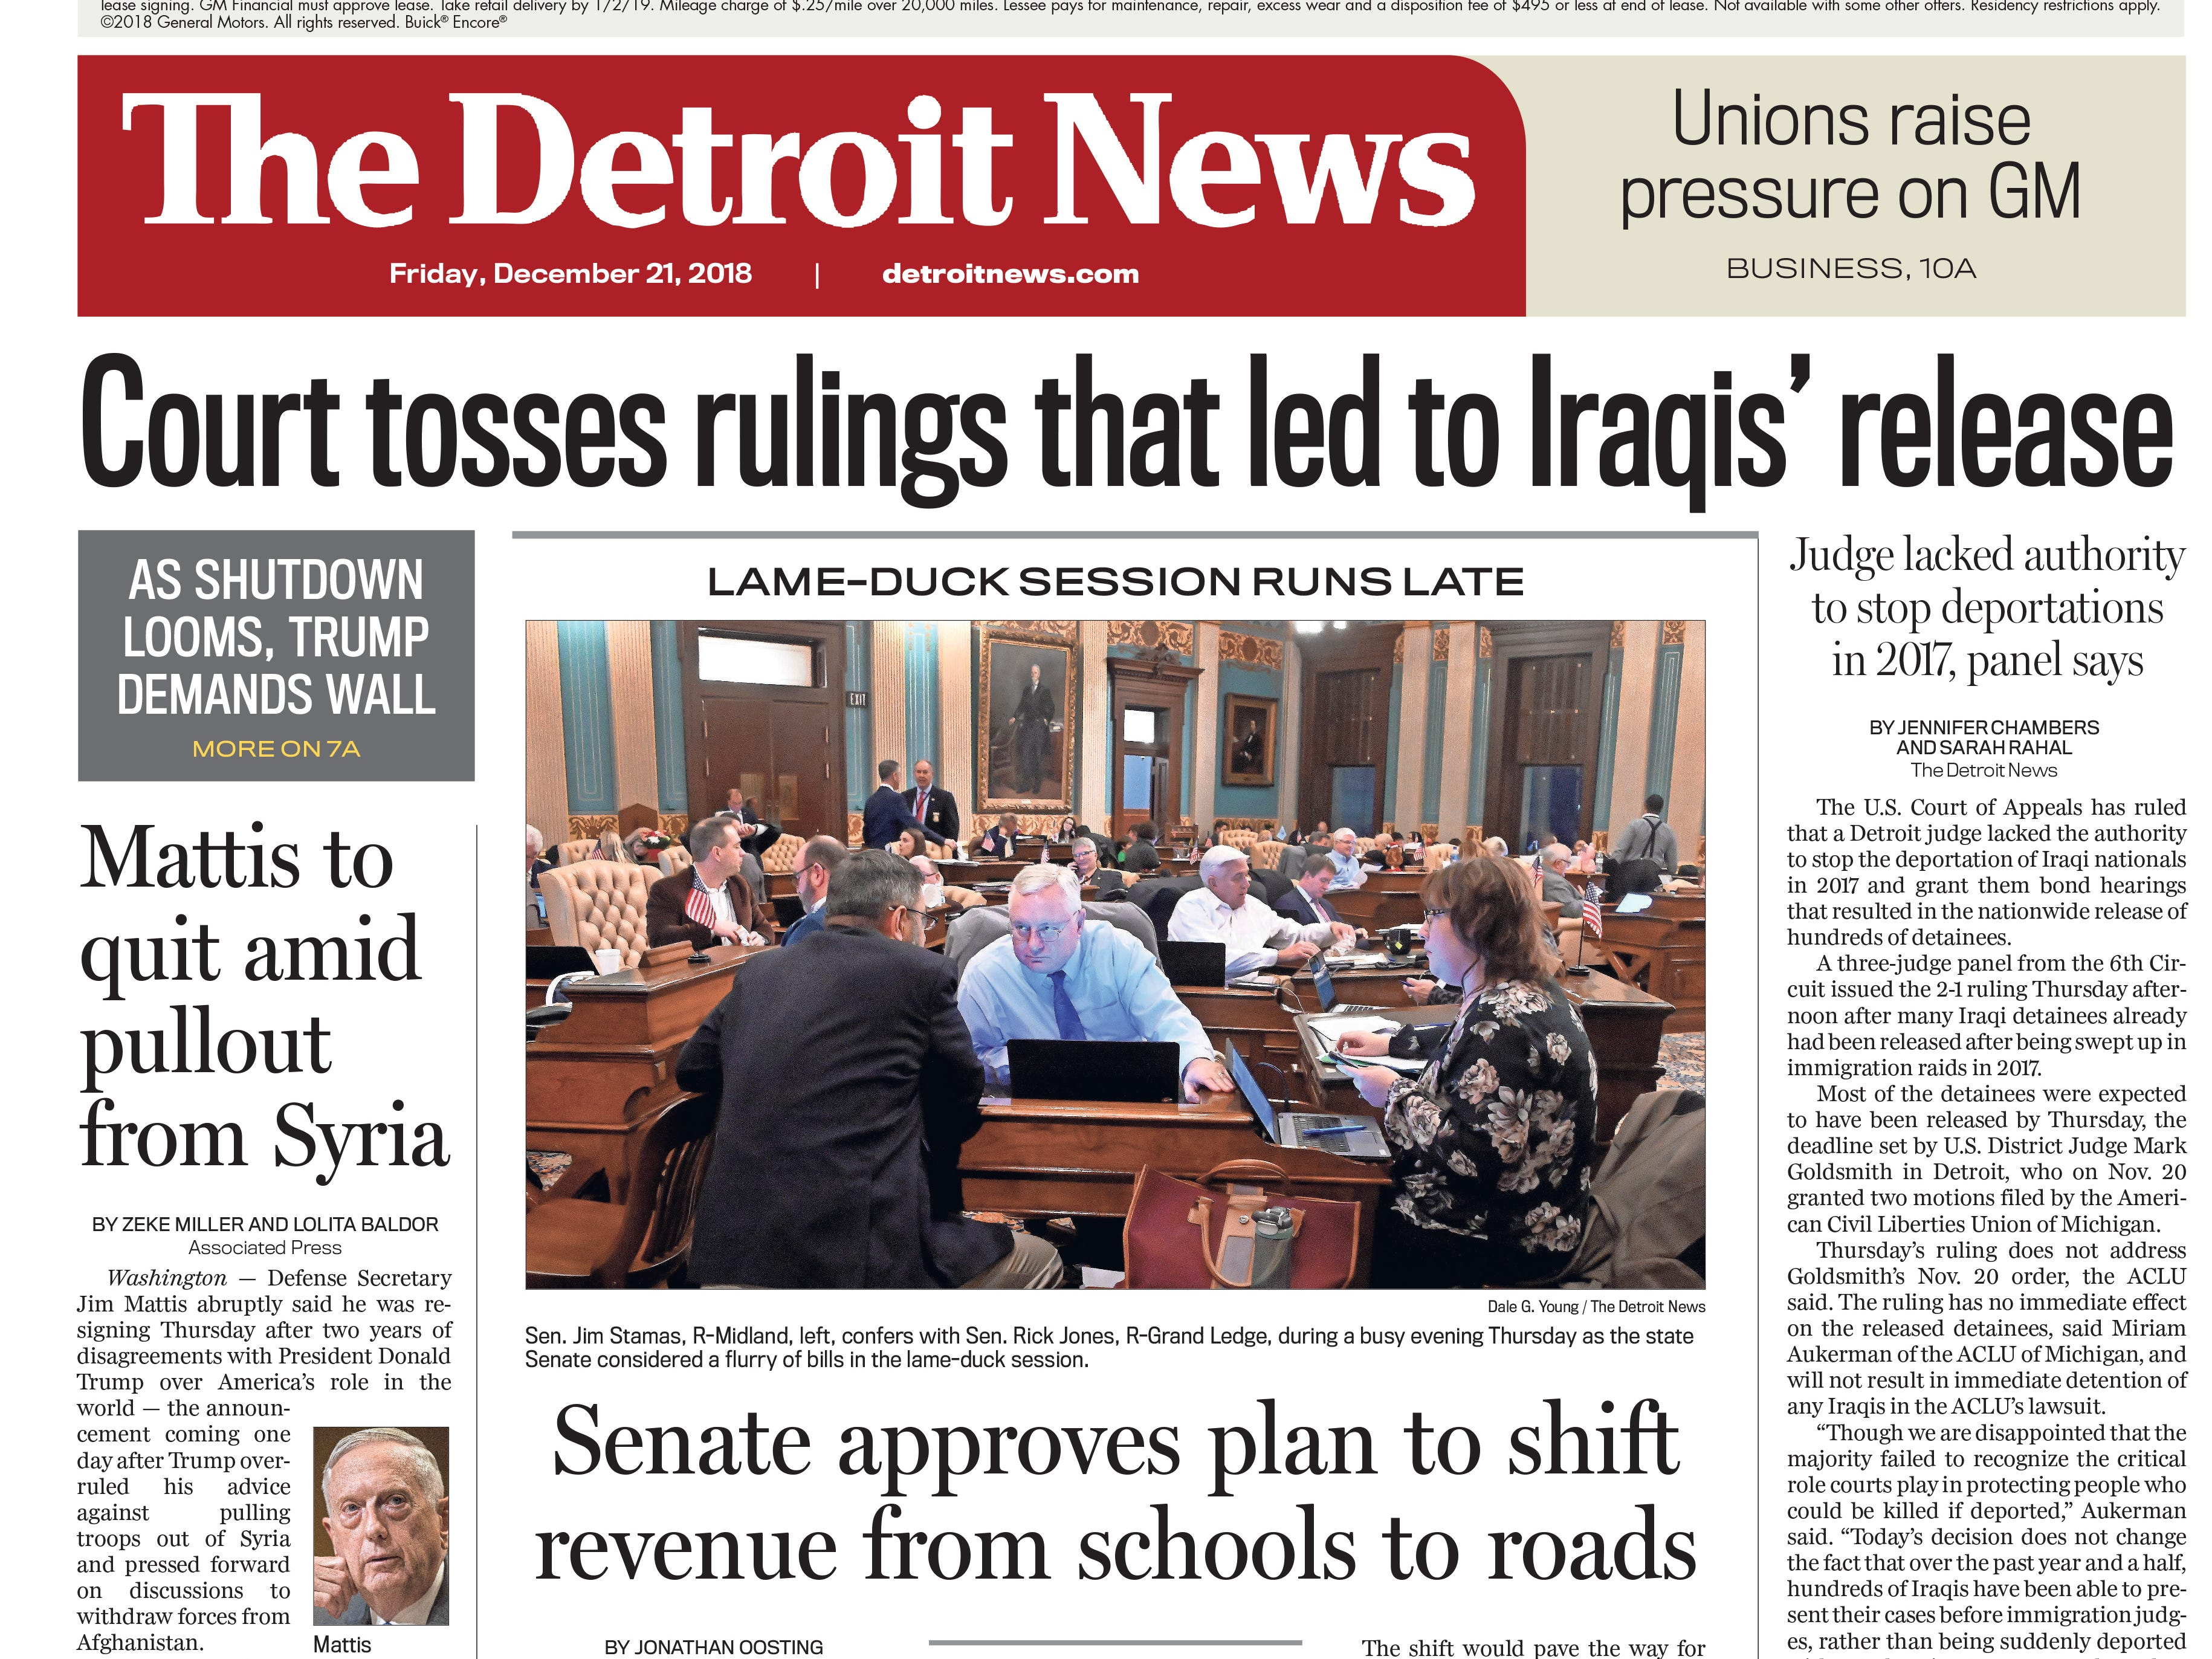 The front page of the Detroit News on Friday, December 21, 2018.